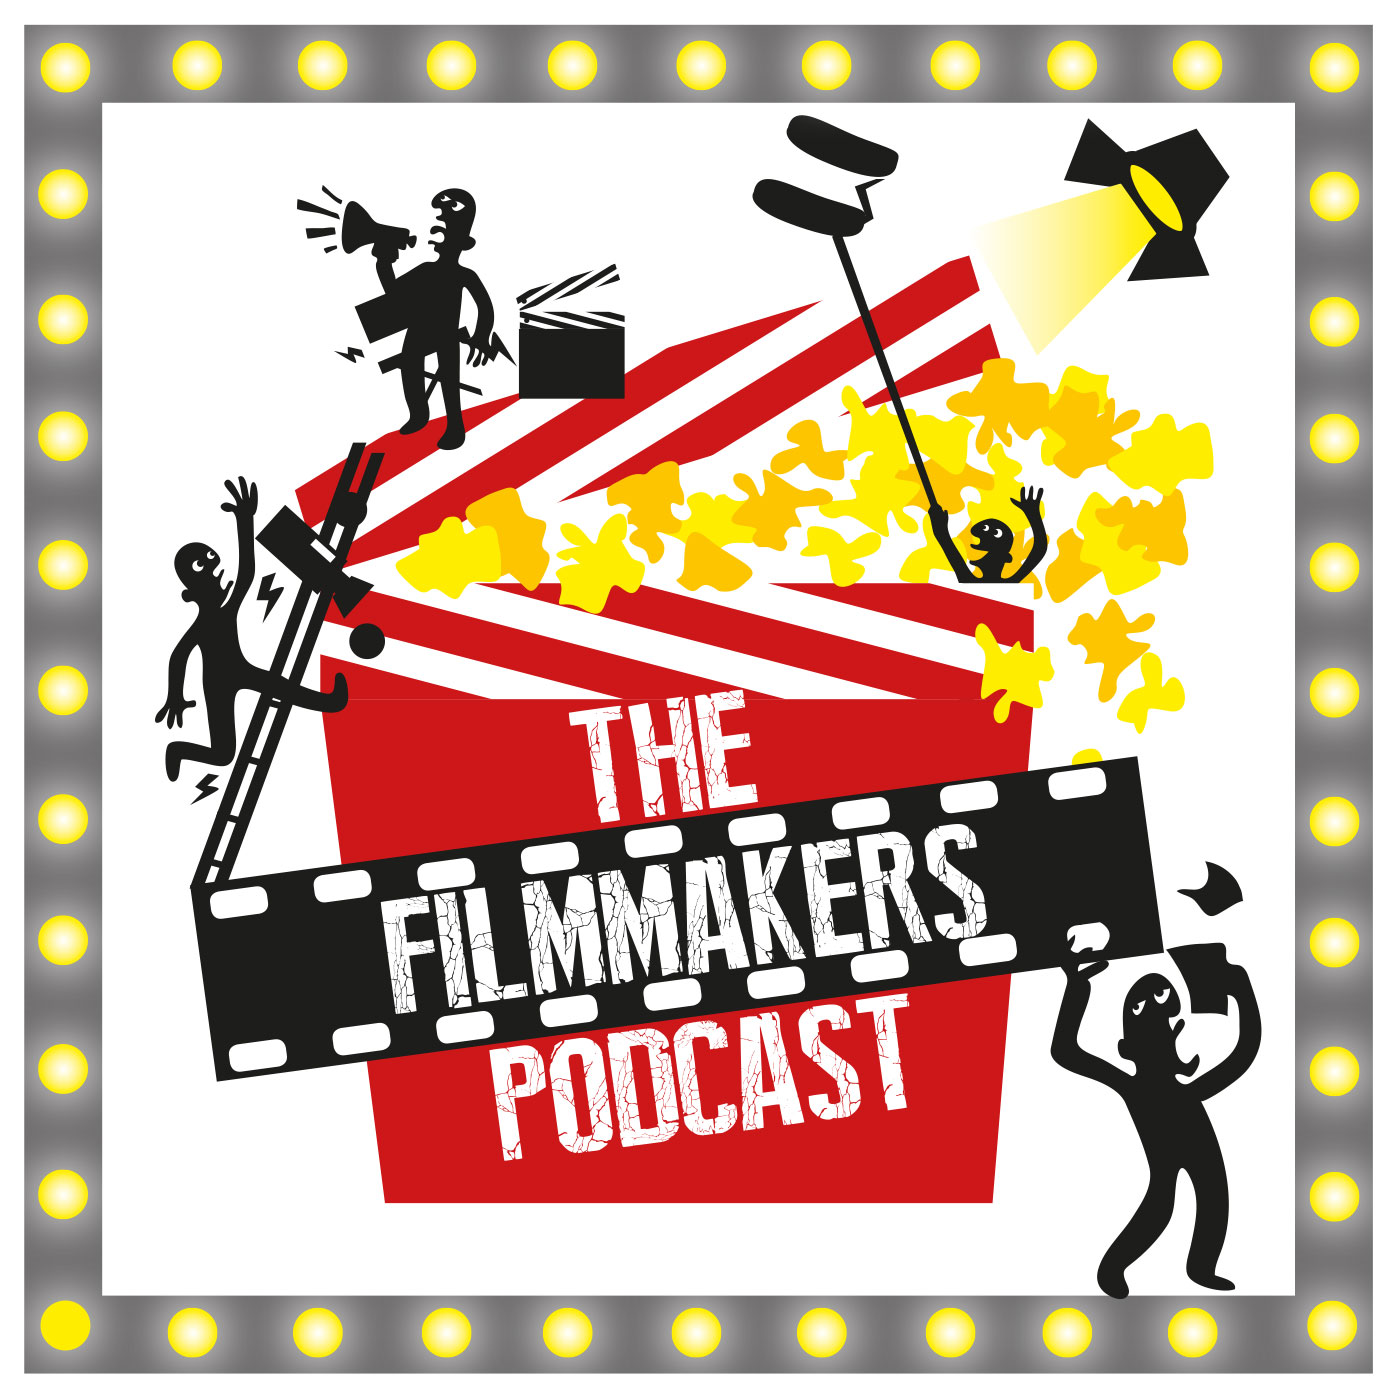 The Filmmakers Podcast | Directing | Producing | Screenwriting | IndieFilms